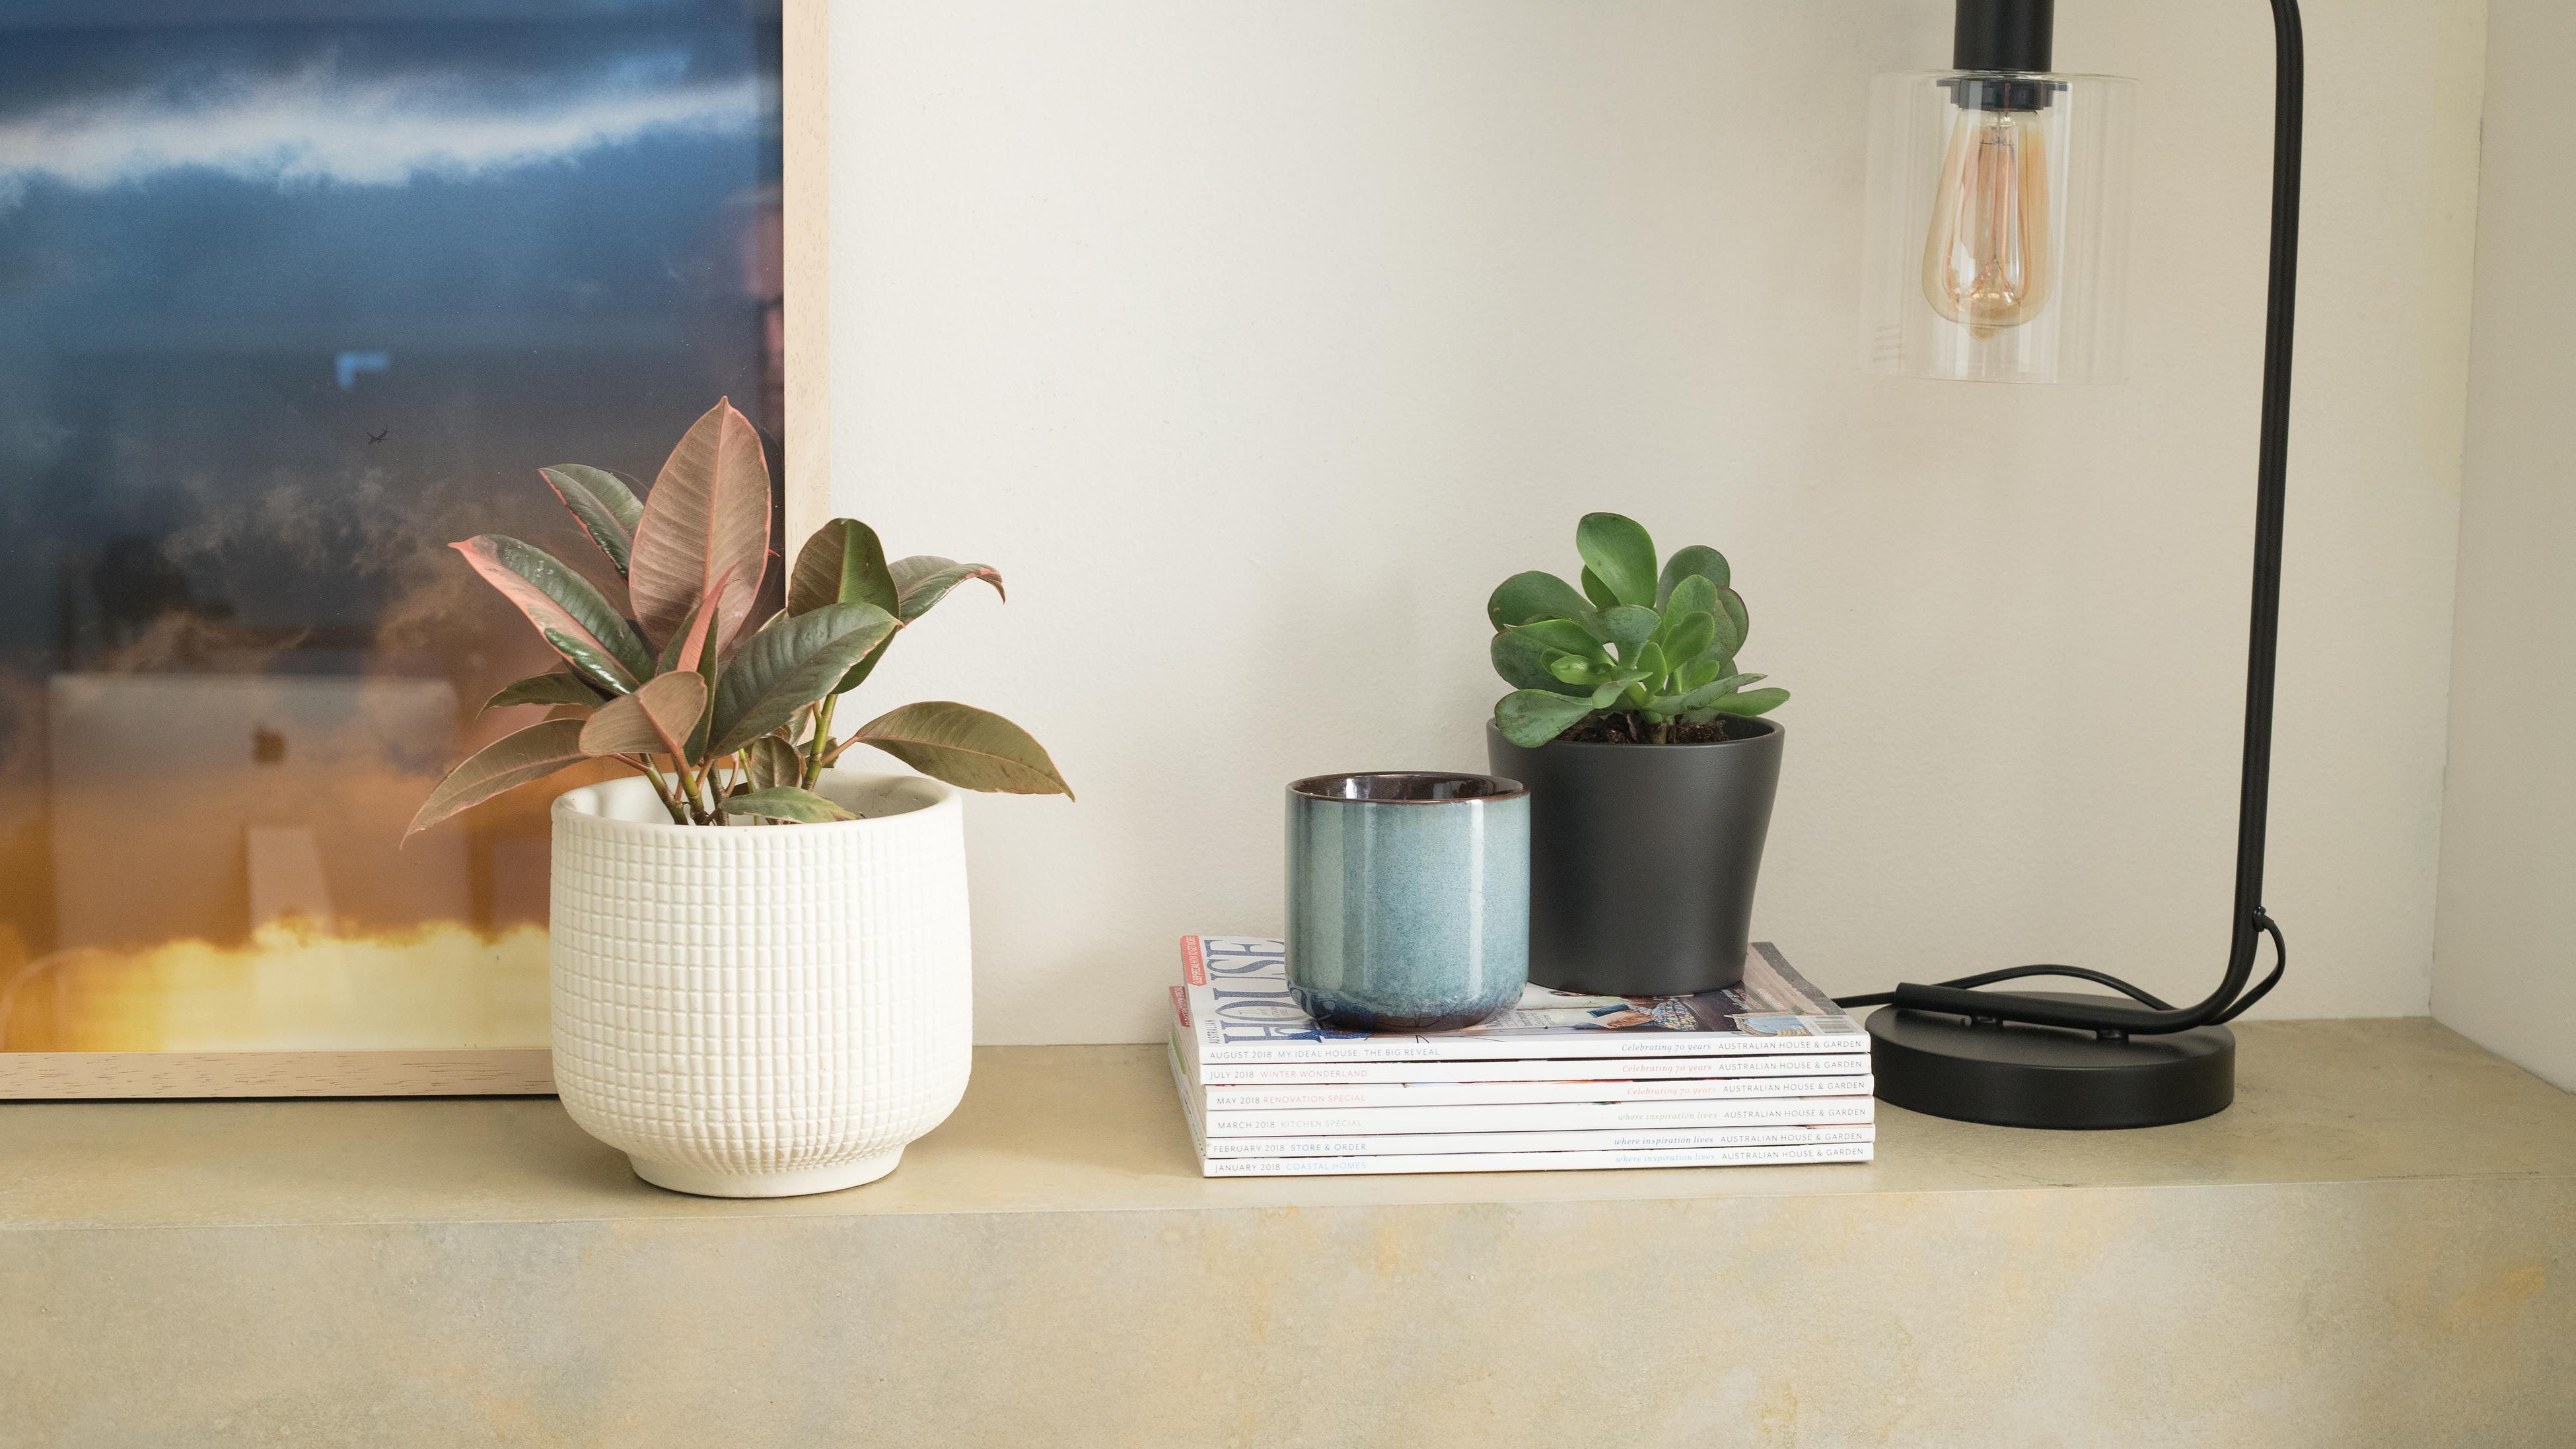 Potted plants, a stack of magazines and a lamps on a shelf